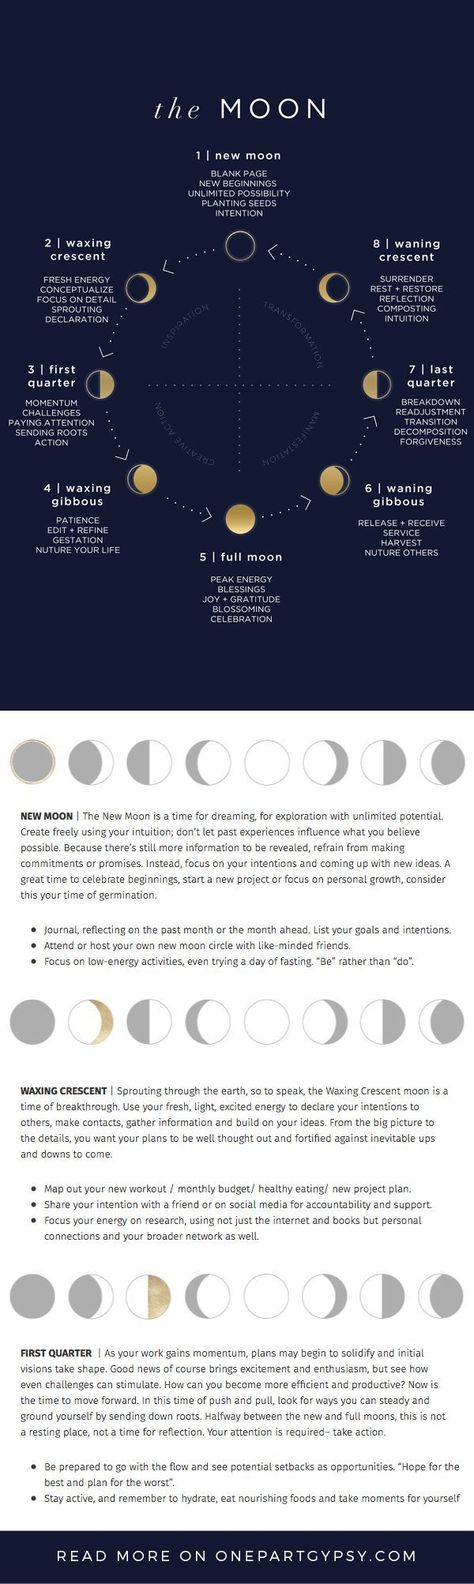 A comprehensive lunar guide describing each of the moon phases and how to best harness their energy #numerologyorigin